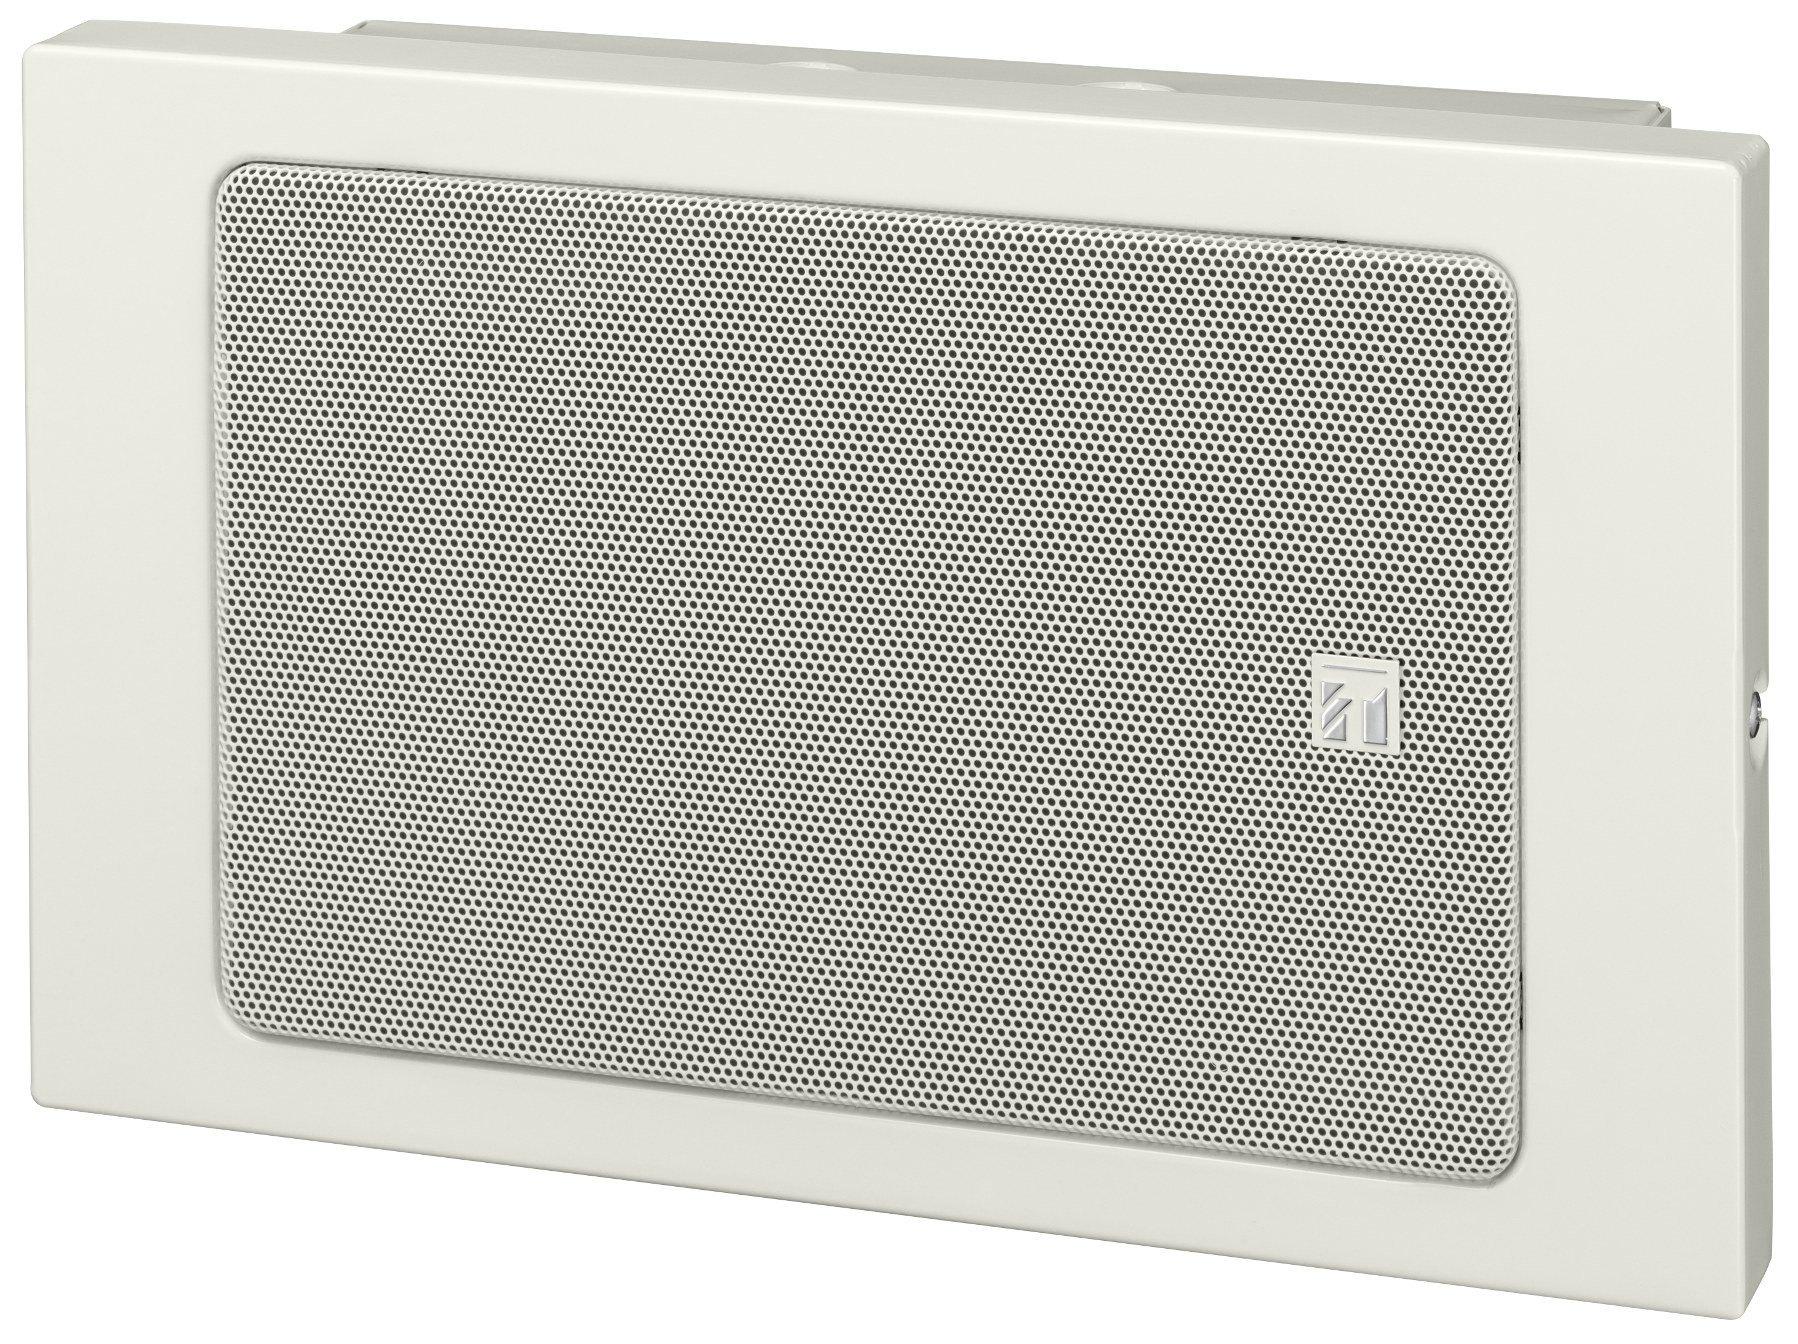 Metal Box Wall Mount Paging Speaker, White